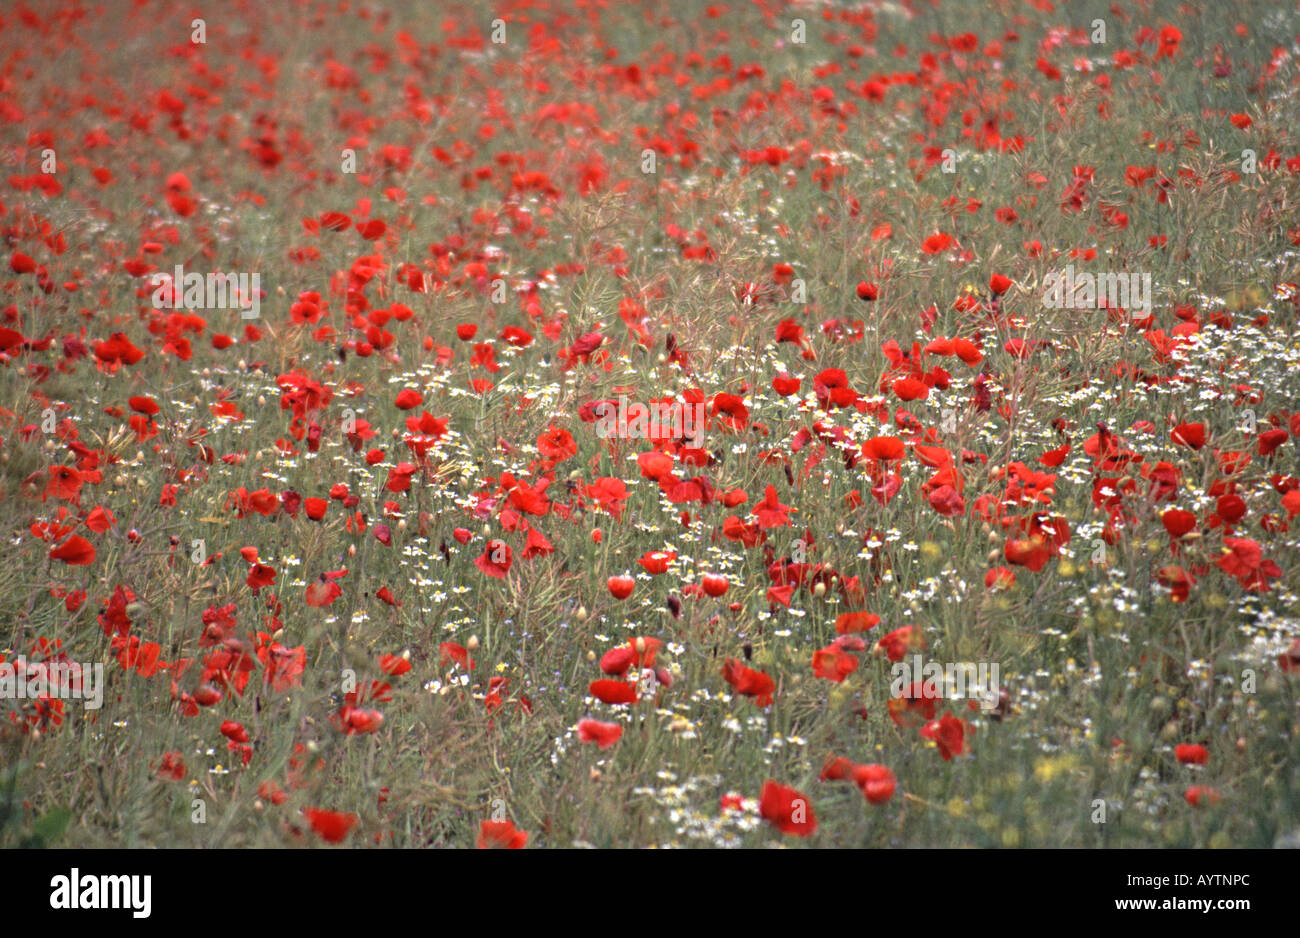 United kingdom poppies and daisies growing in a field near oxford united kingdom poppies and daisies growing in a field near oxford izmirmasajfo